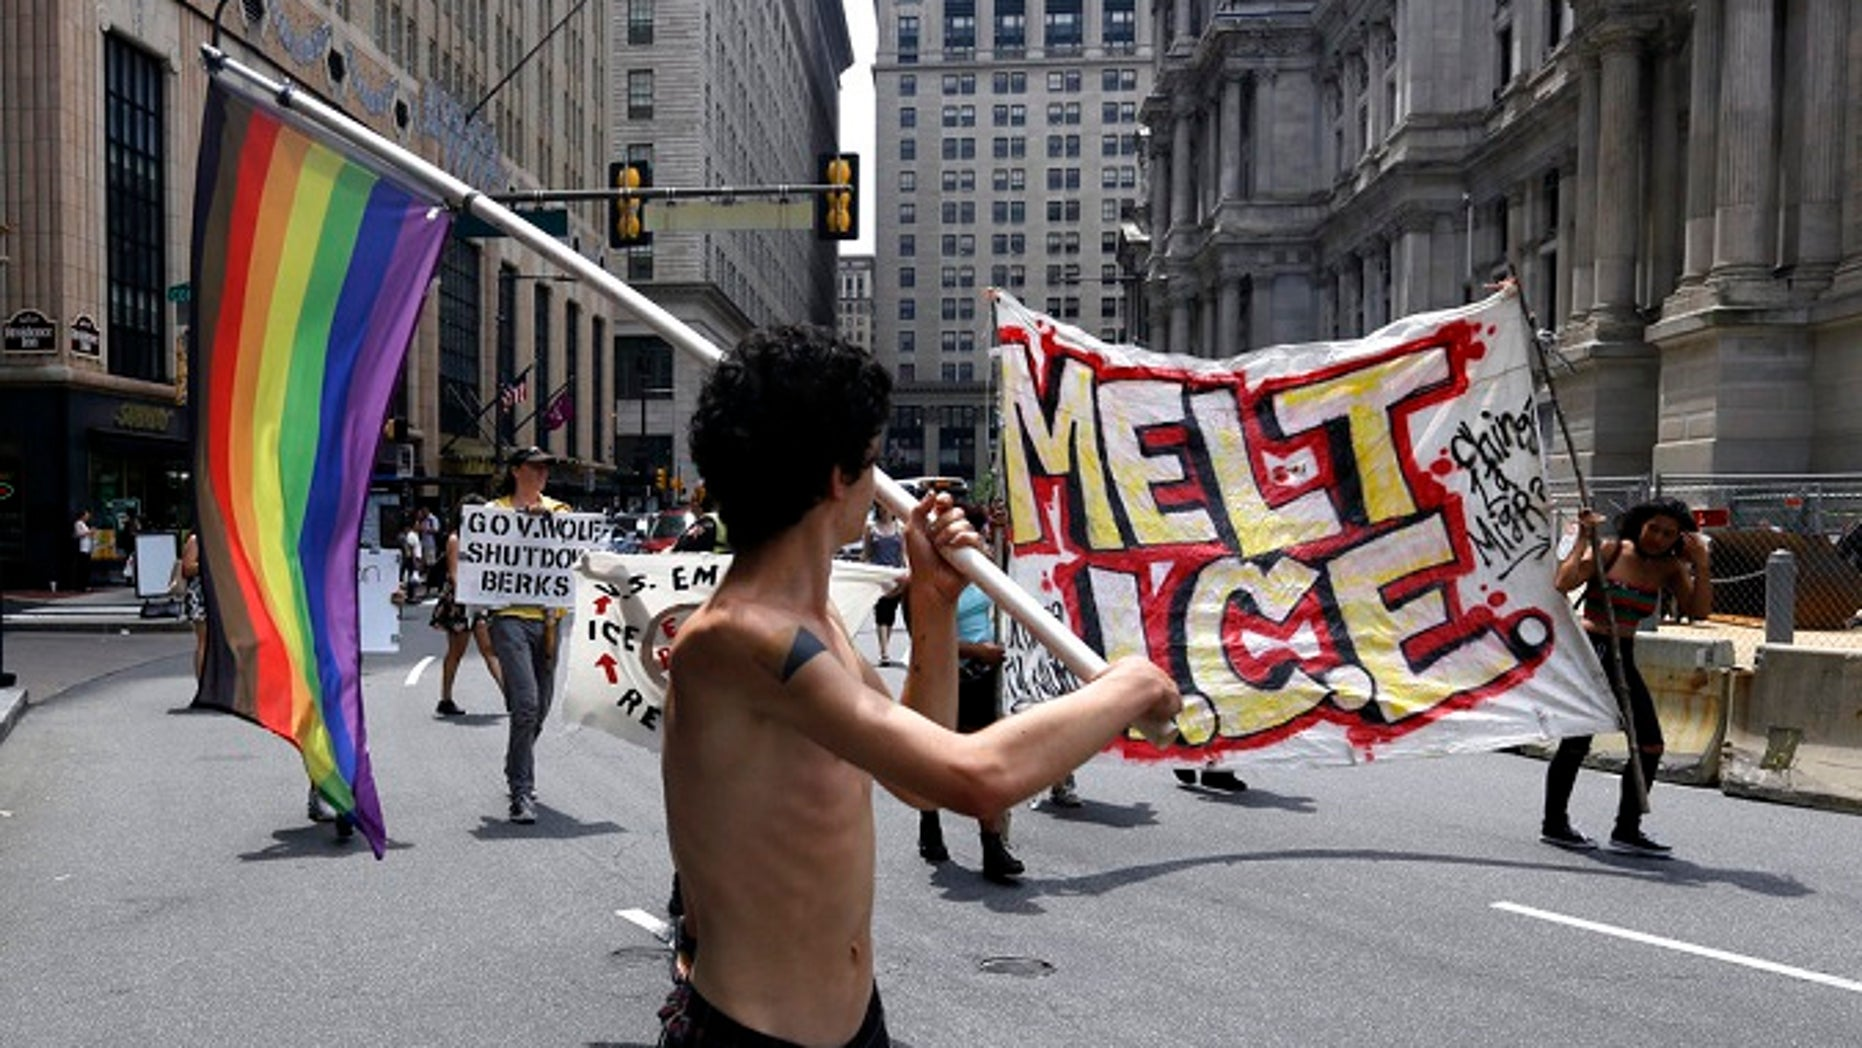 Protesters camped outside City Hall march in the street after a decision about ICE was made, Friday July 27, 2018, in Philadelphia. Mayor Jim Kenney announced Friday that Philadelphia will stop giving U.S. Immigration and Customs Enforcement (ICE) access to a real-time arrest database.